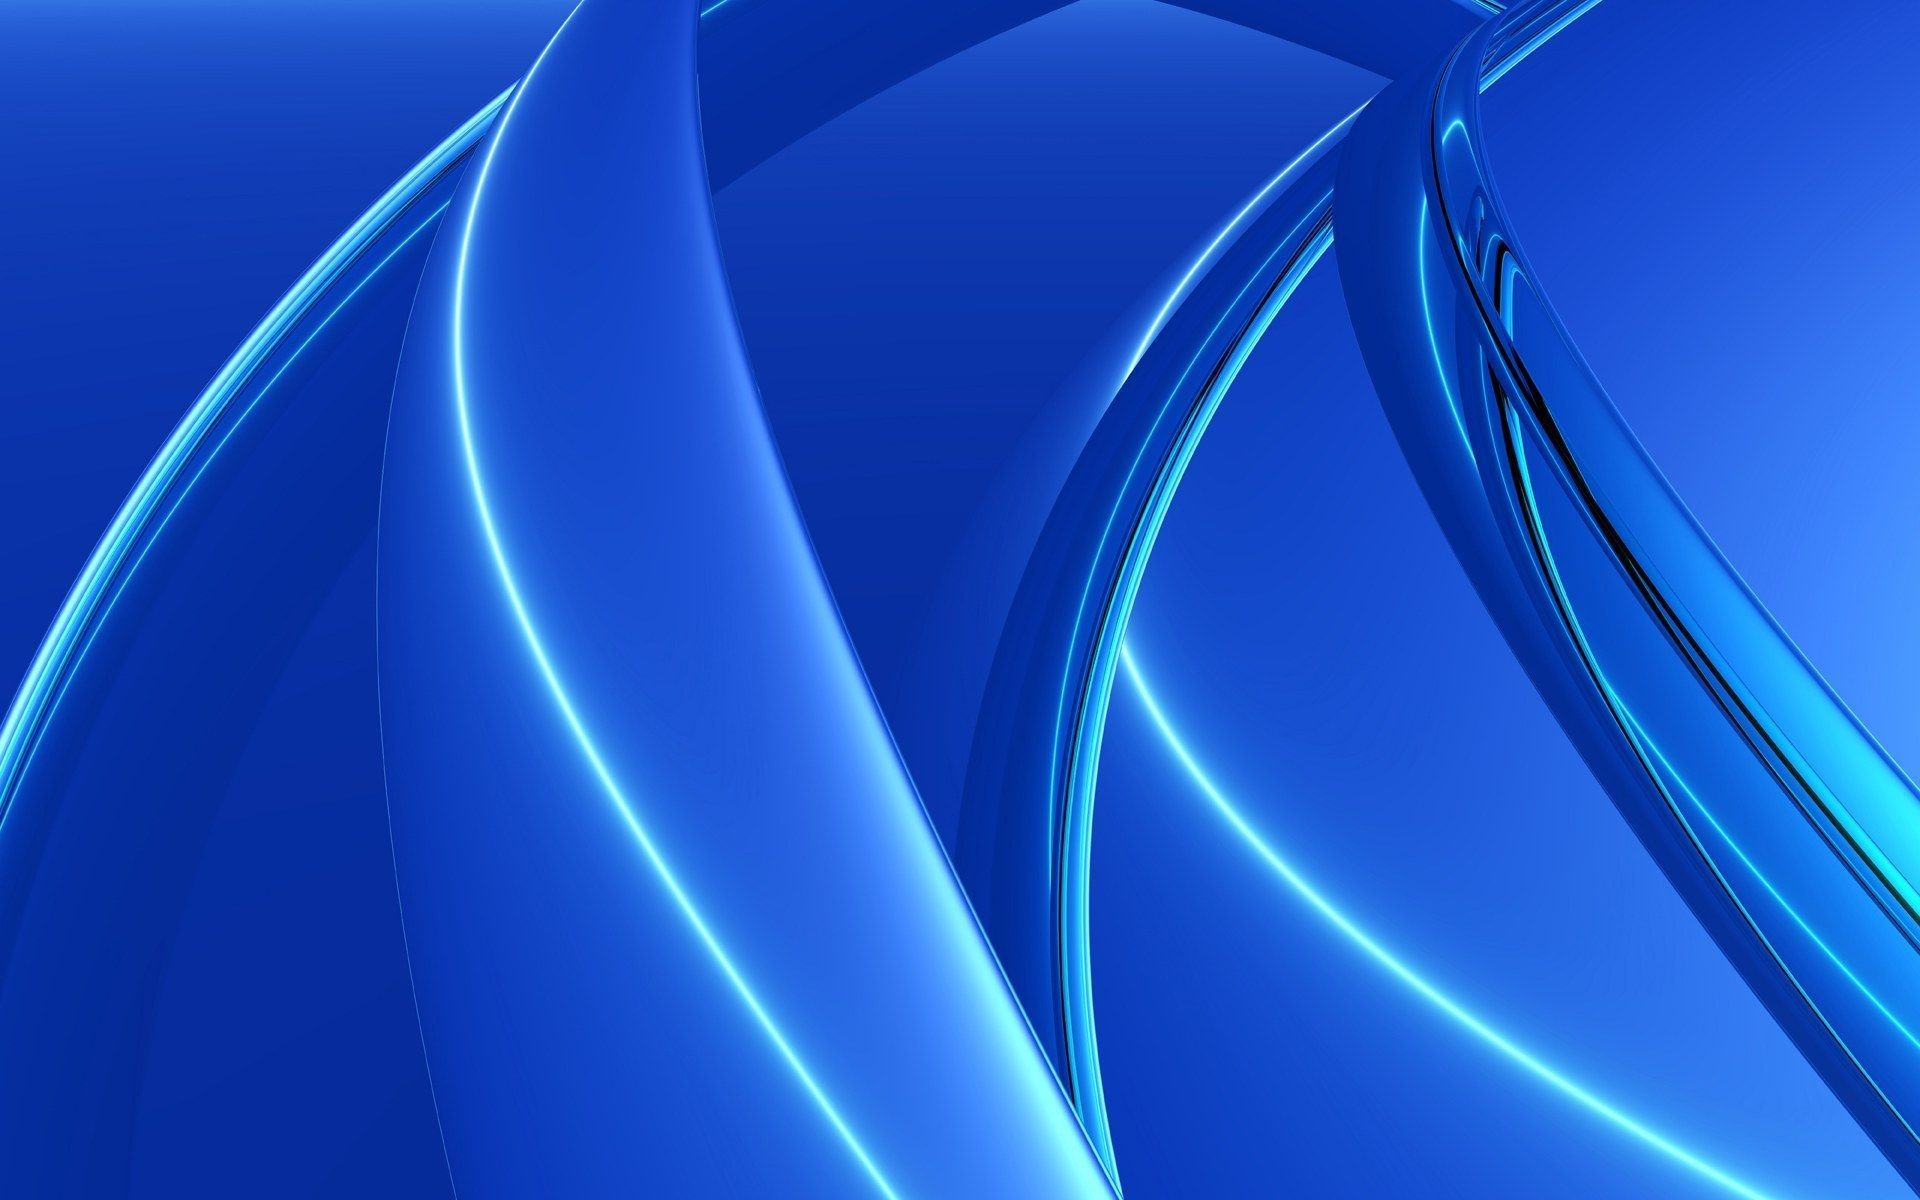 Hd Abstract Blue Background: Royal Blue Background ·① Download Free HD Wallpapers For